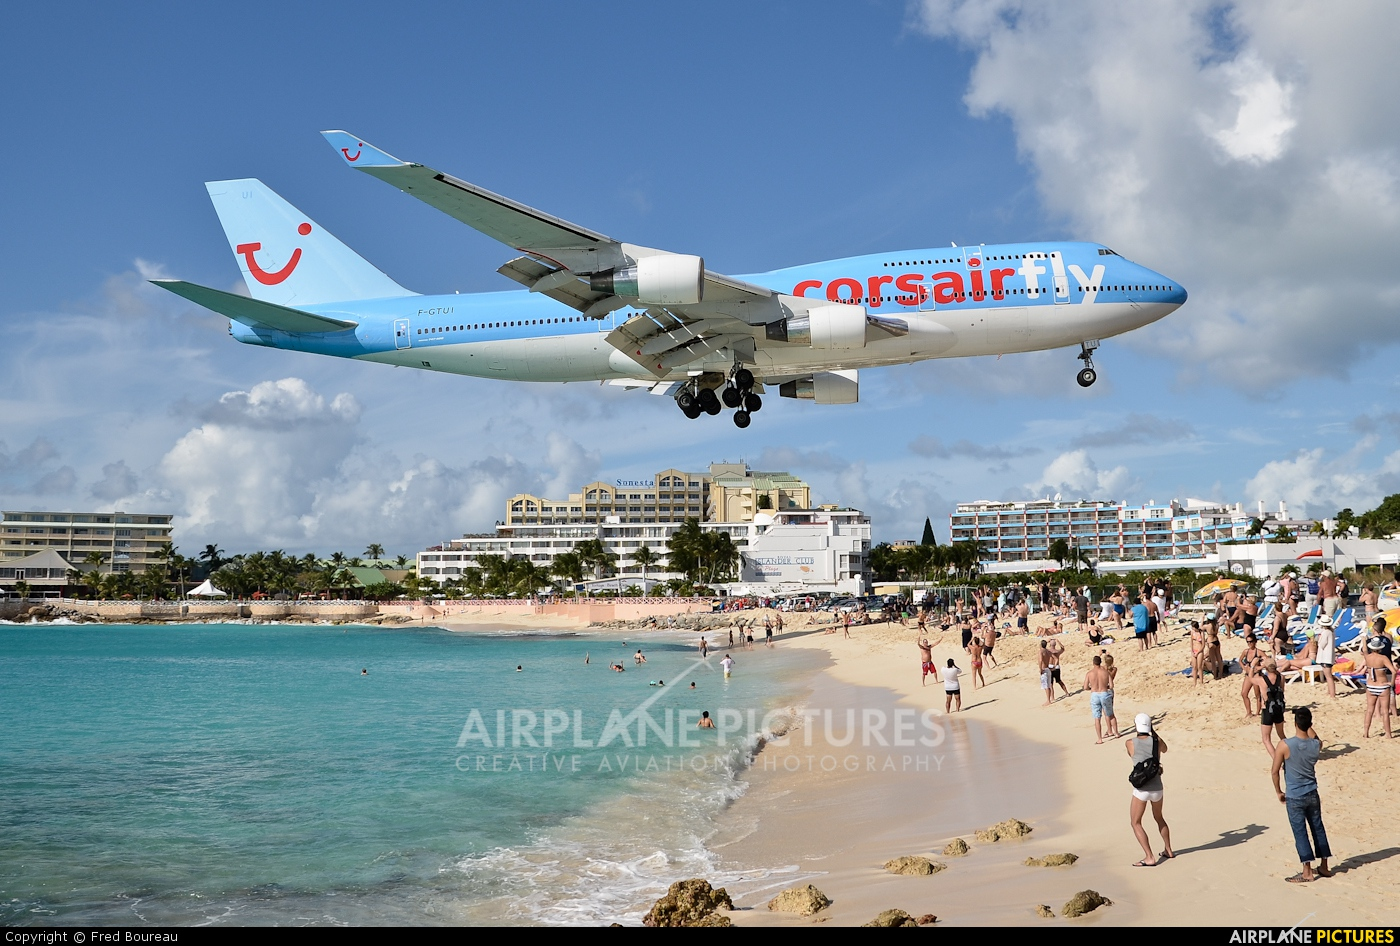 Corsair / Corsair Intl F-GTUI aircraft at Sint Maarten - Princess Juliana Intl